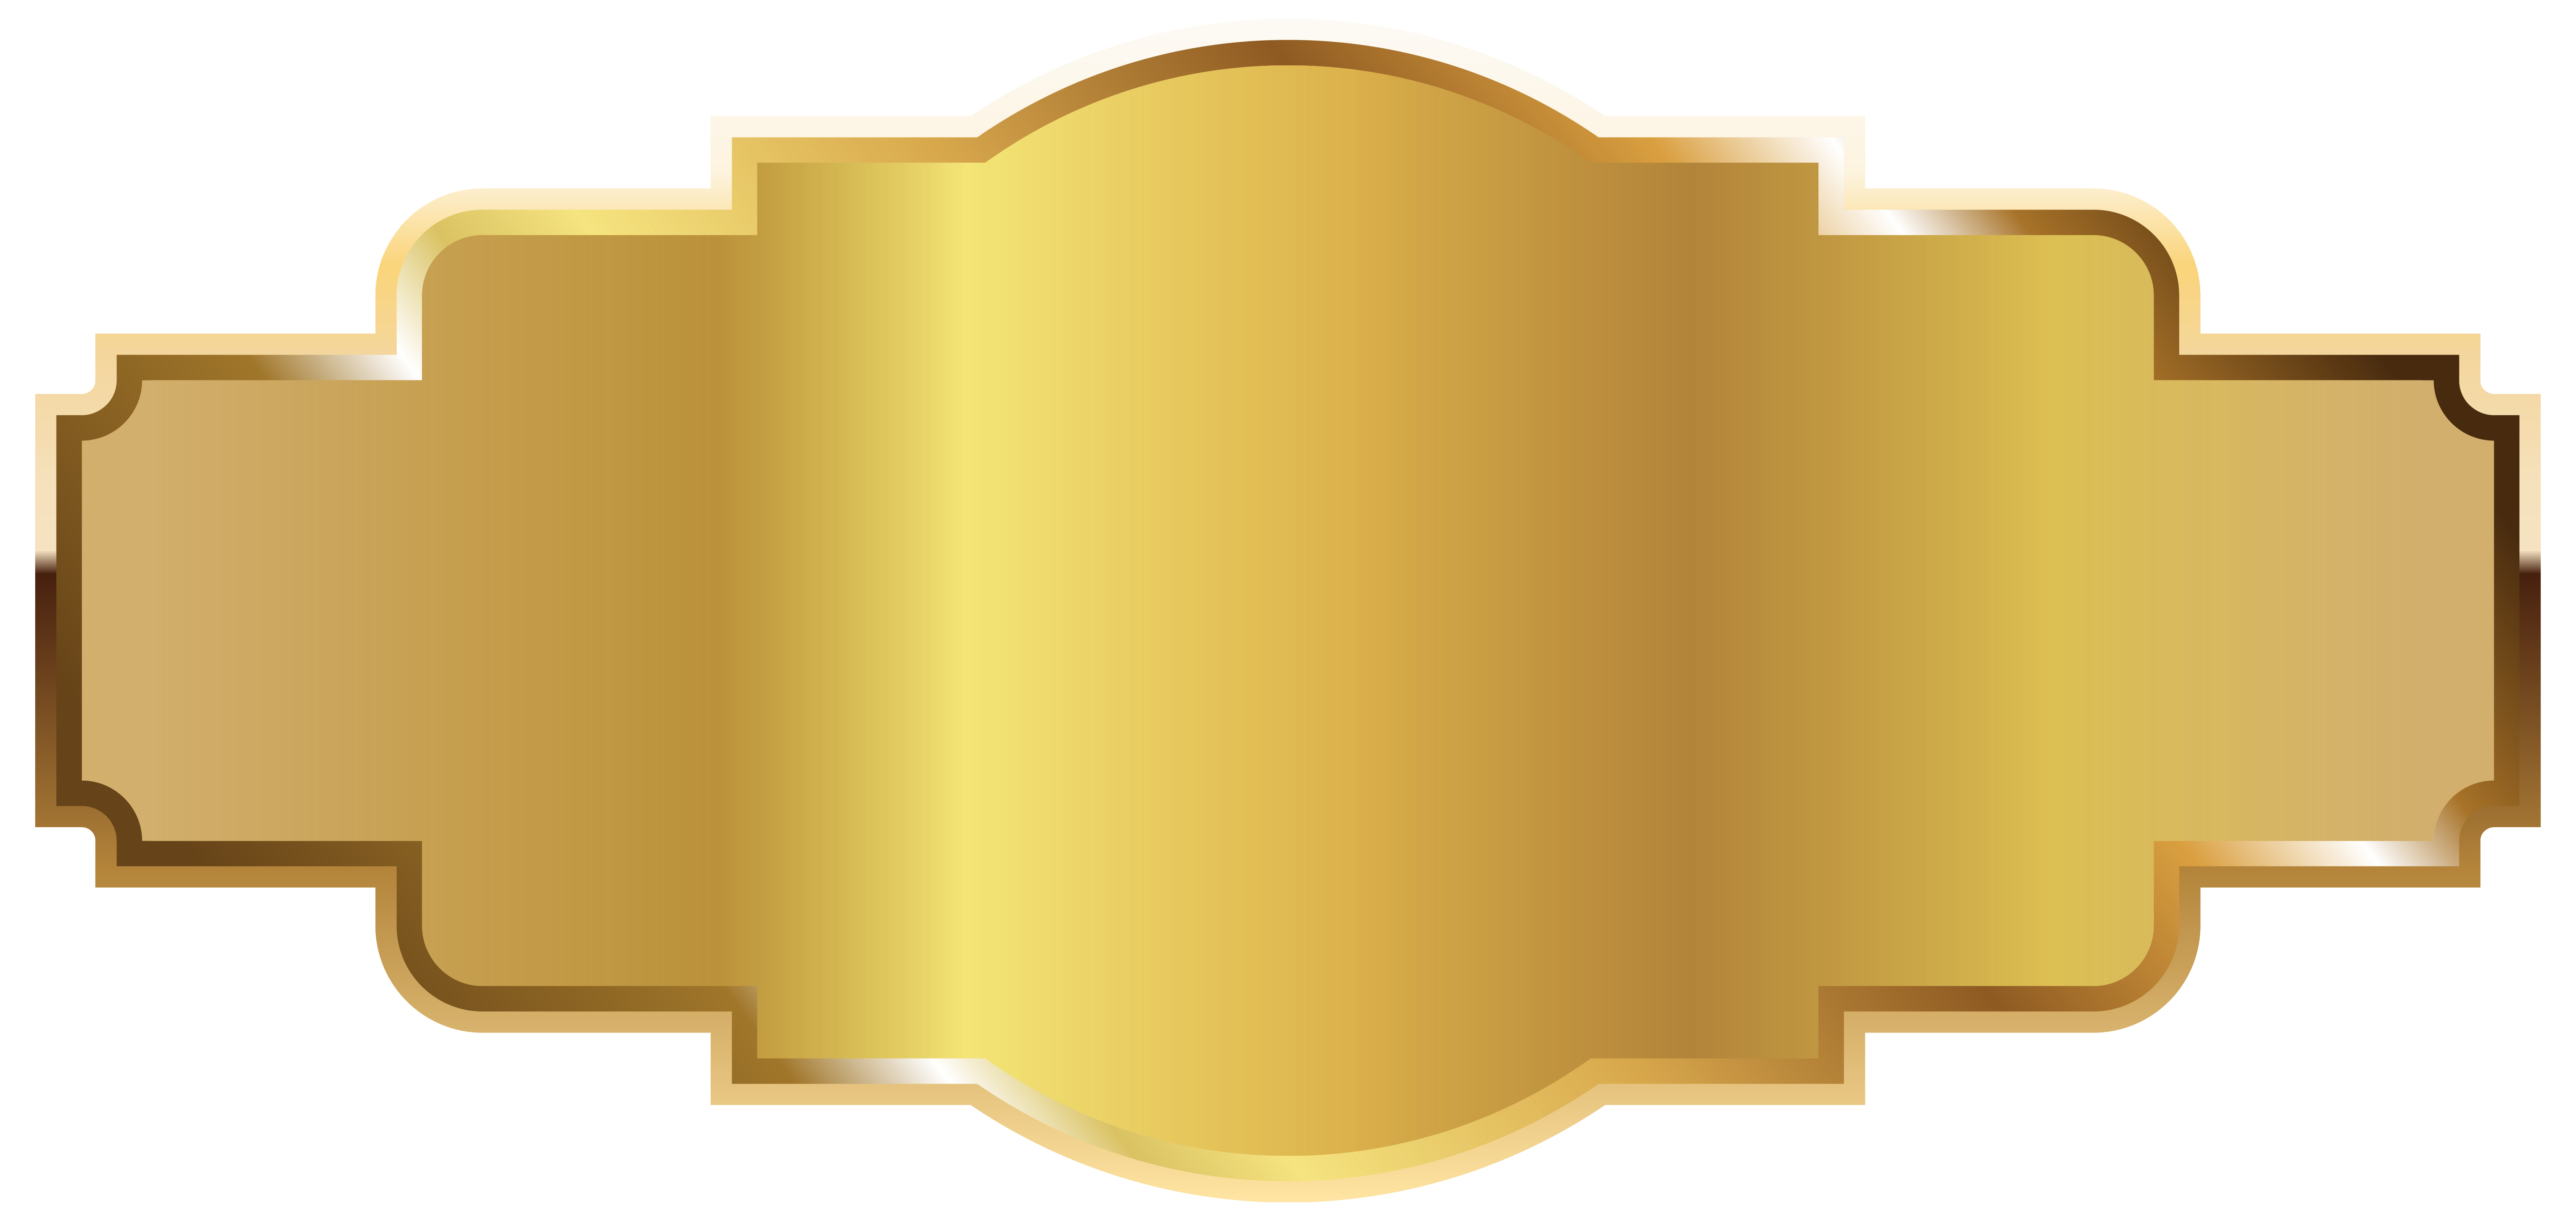 Gold Label Template Png Image Gallery Yopriceville High Quality Images And Transparent Png Free Clipart Png Images Free Clip Art Gold Labels